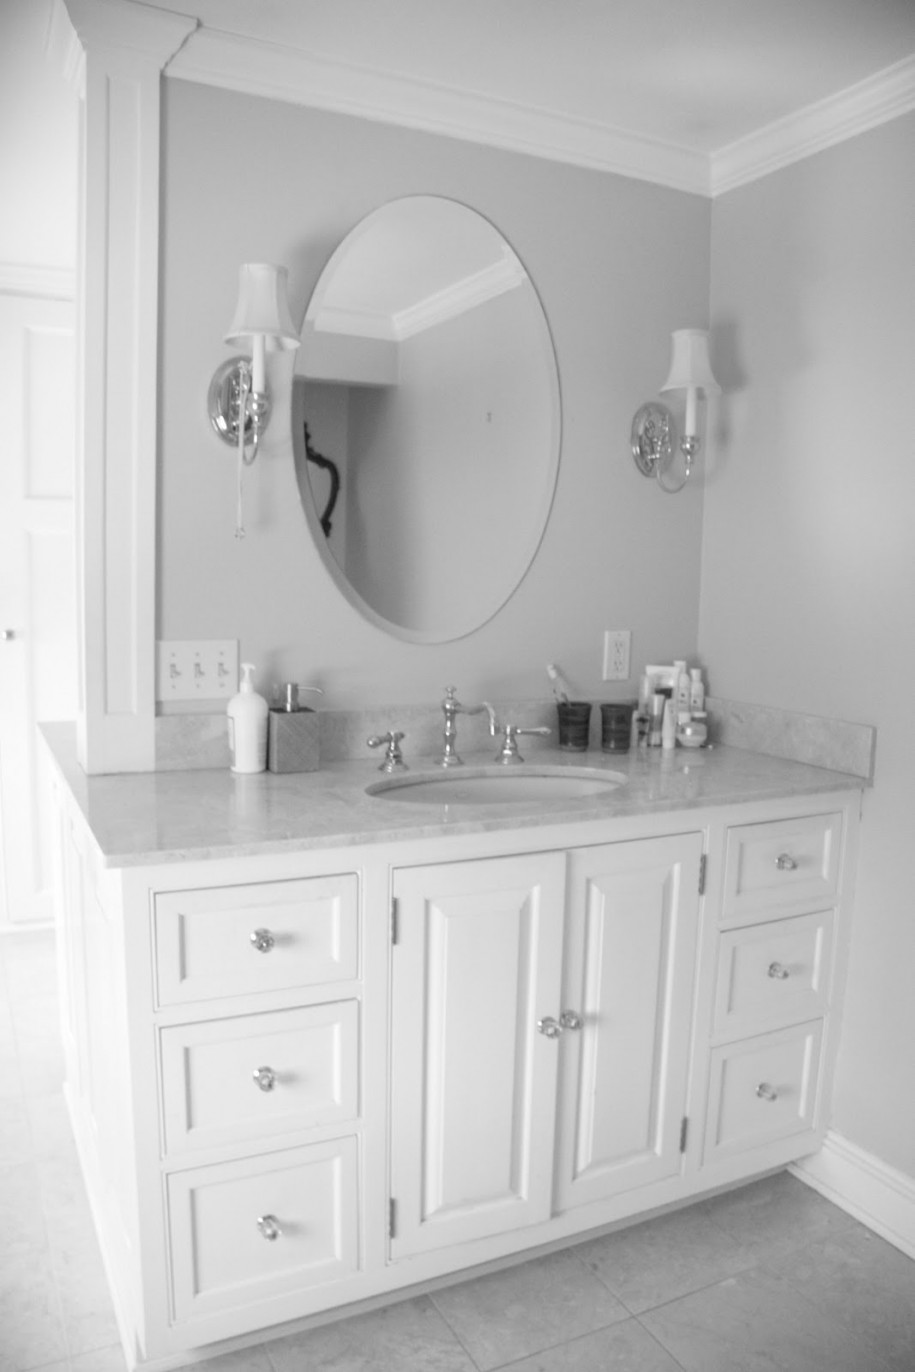 Marvelous Cabinet With Marble Top also White Bathroom Mirror Design